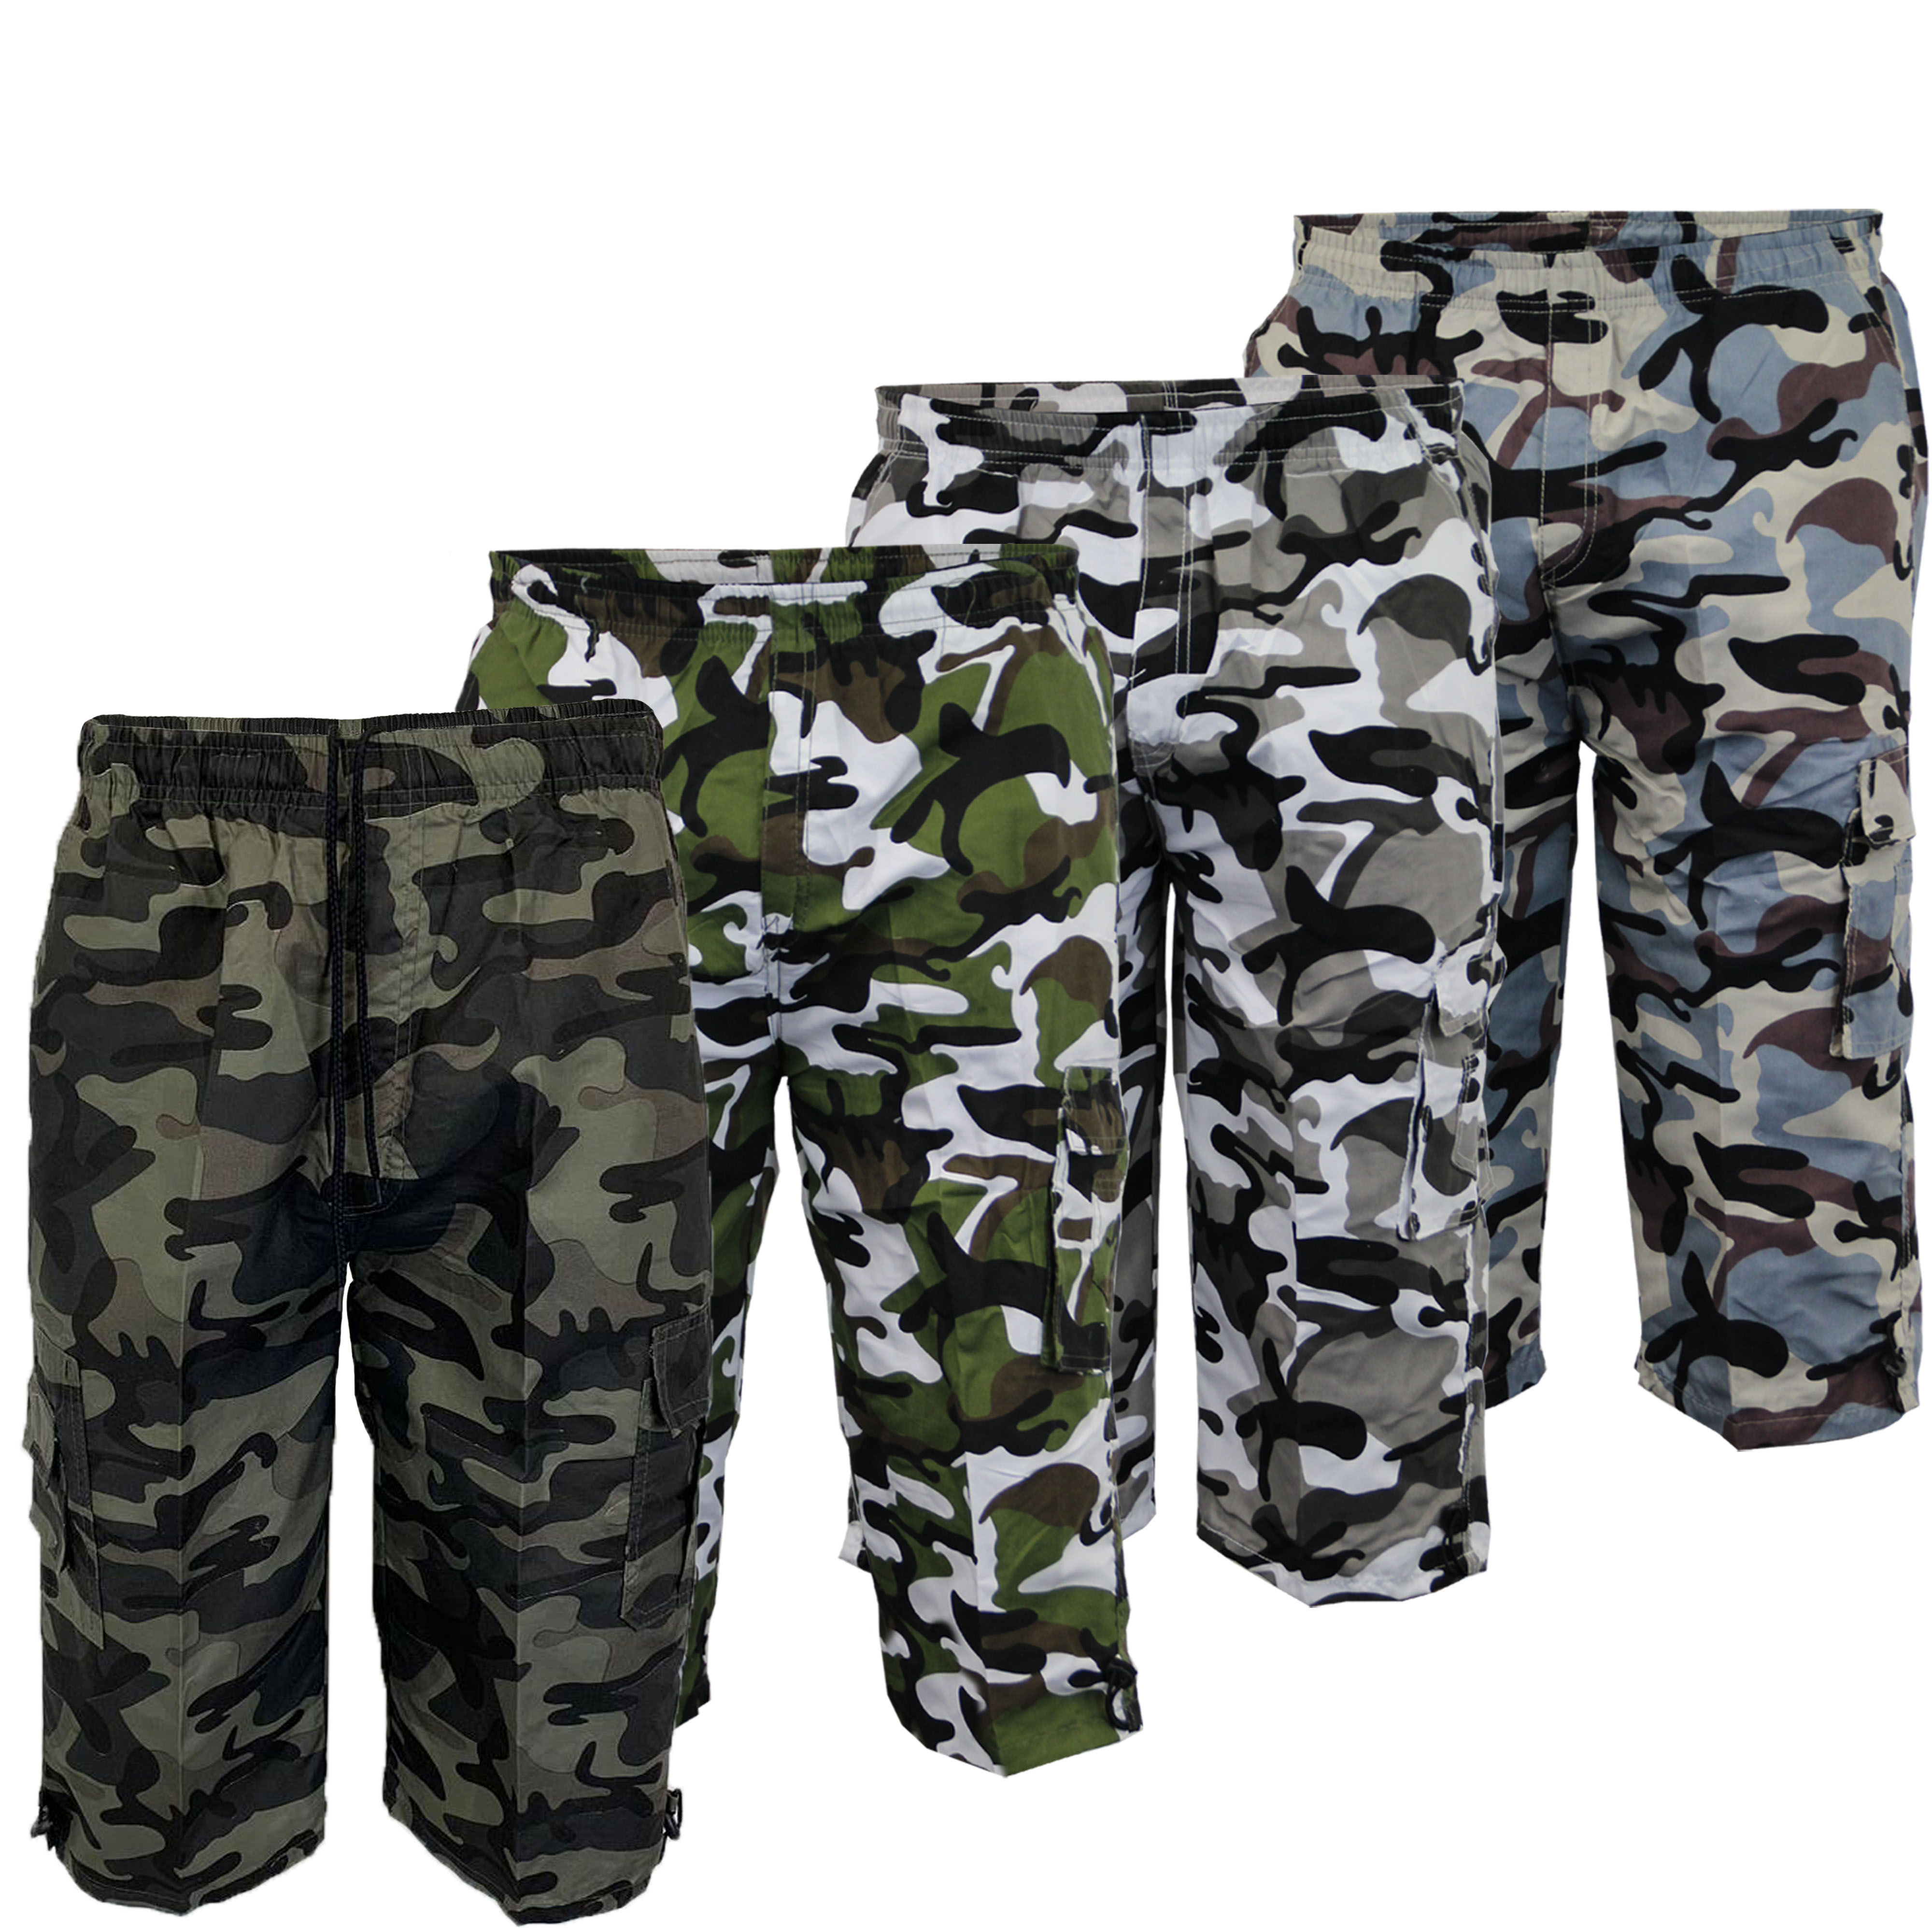 Mens-Camouflage-Combat-Cargo-Shorts-3-4-Length-Army-Military-Sports-Summer-New thumbnail 4